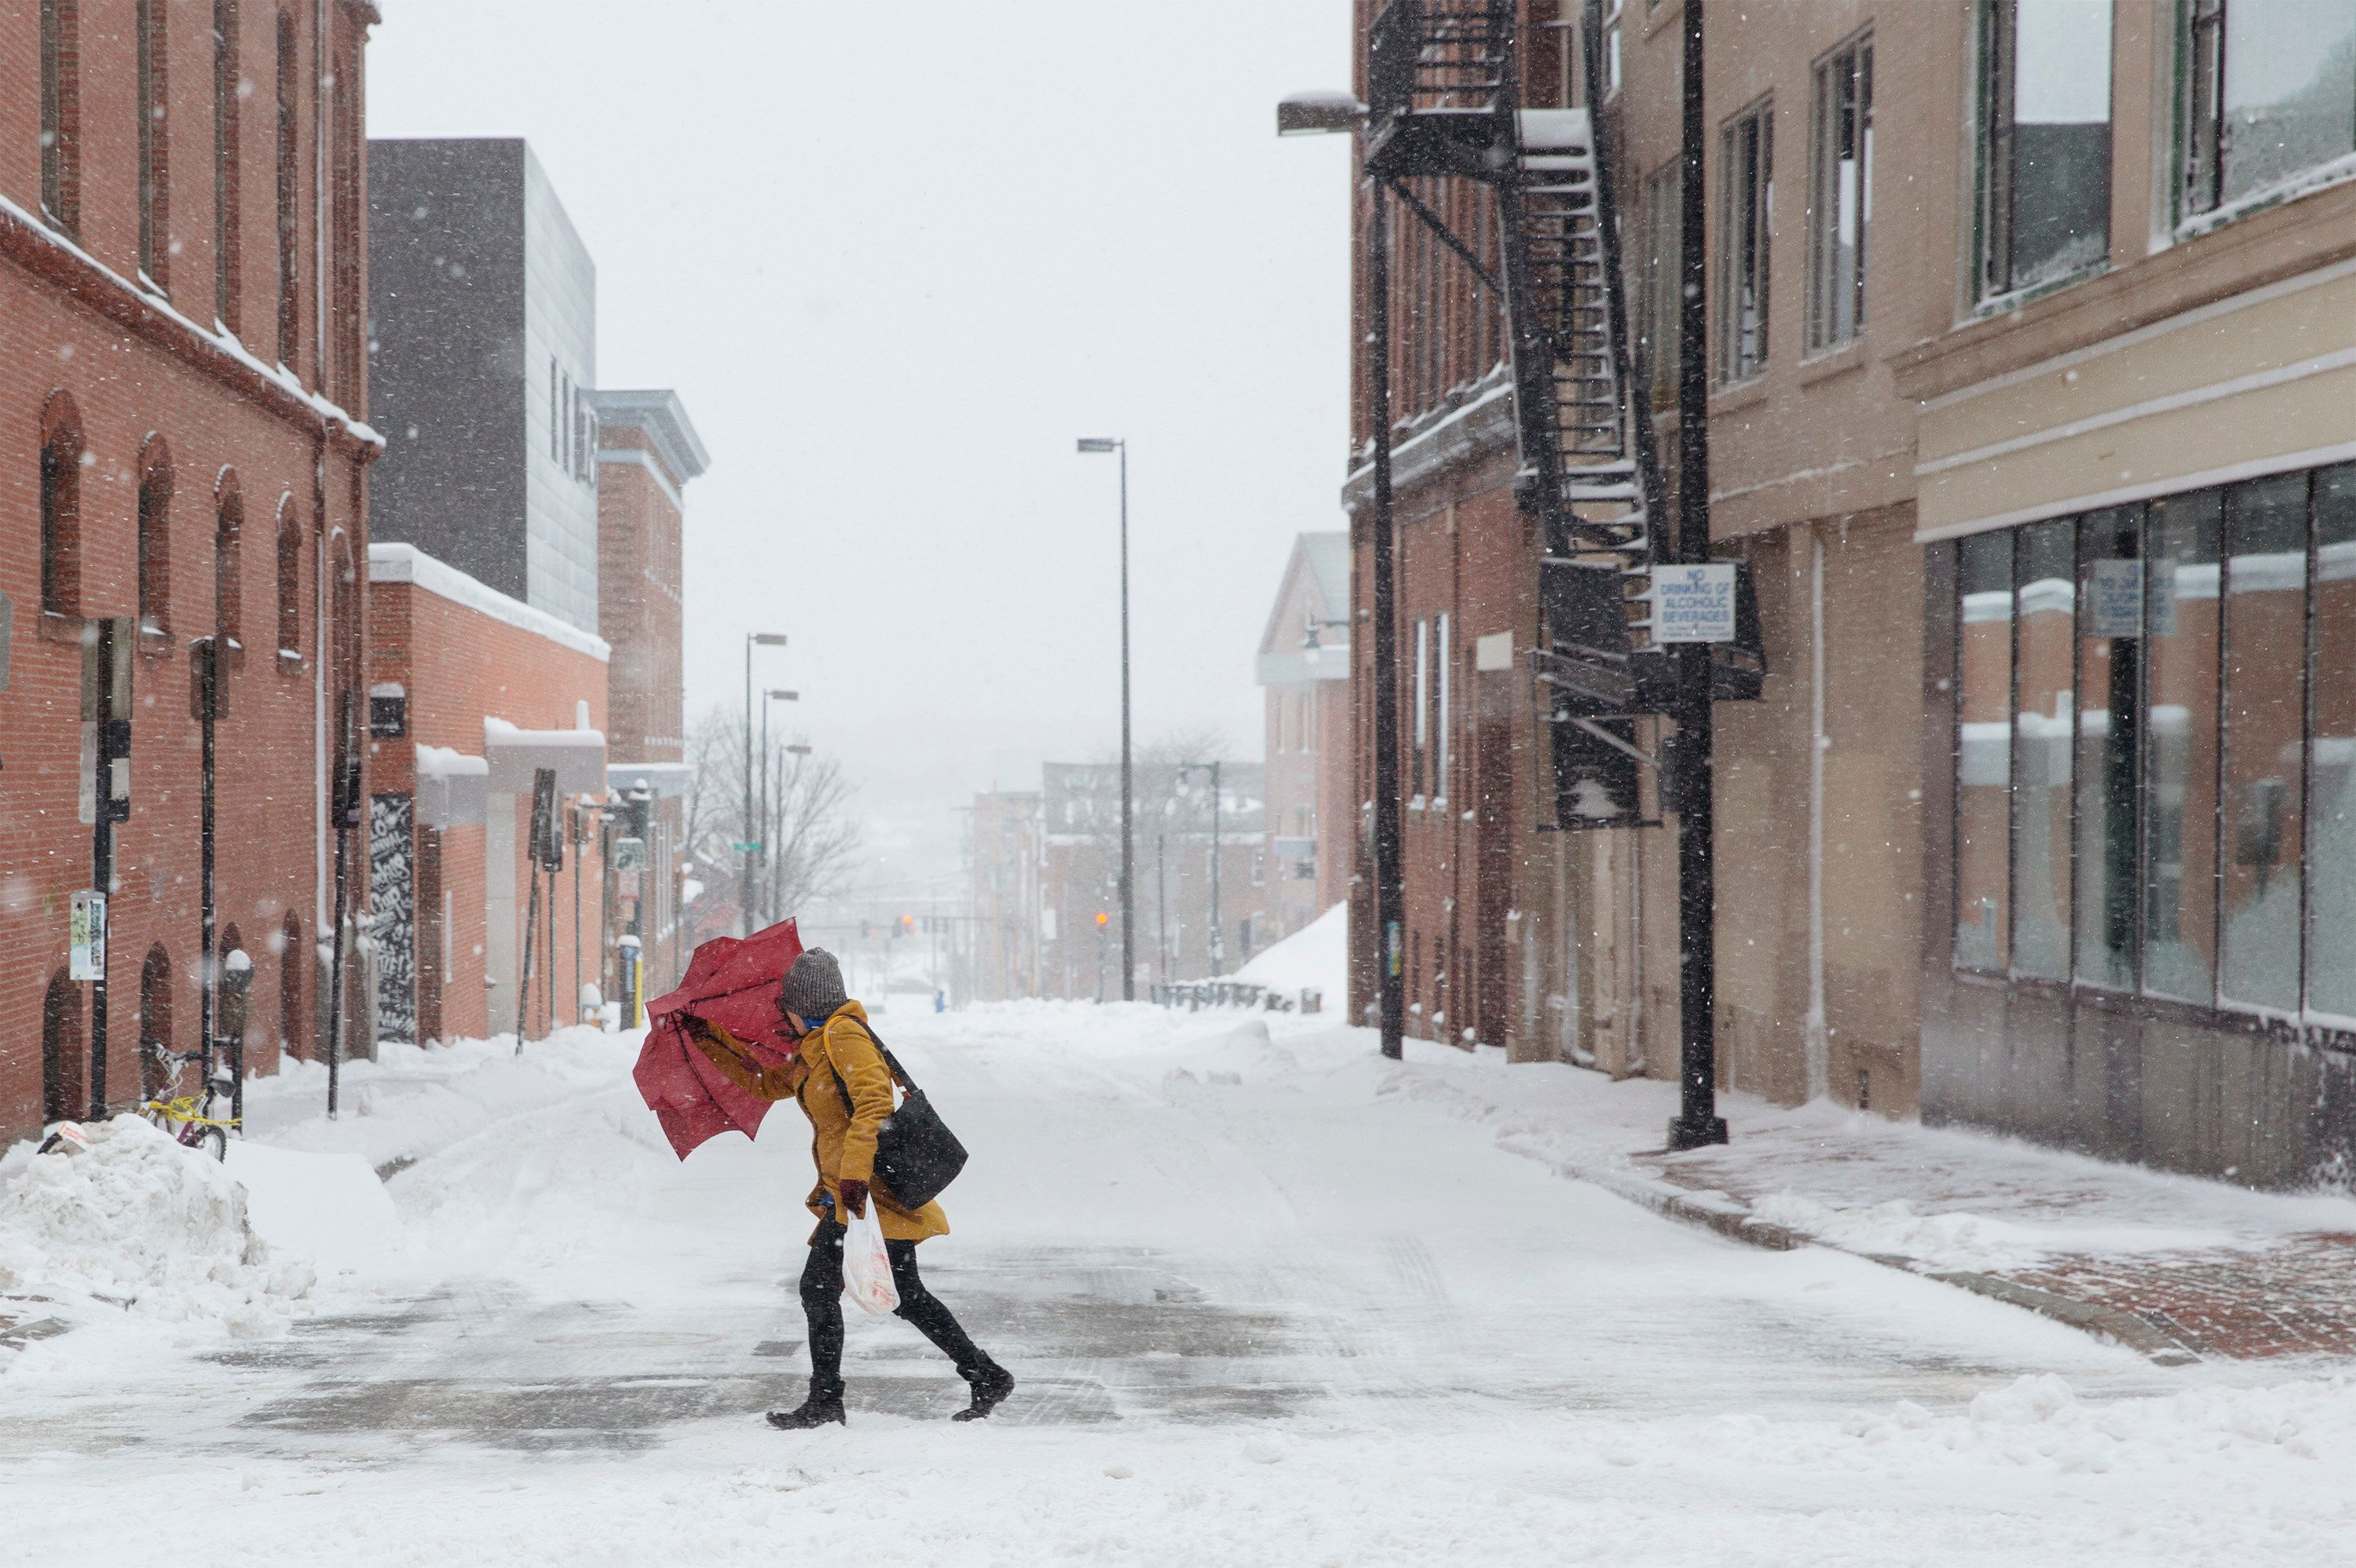 PORTLAND, ME - MARCH 13: 4:12 p.m. A woman uses an umbrella to block the blowing snow while walking near Monument Square during Tuesday's nor'easter. (Staff photo by Brianna Soukup/Portland Press Herald via Getty Images)